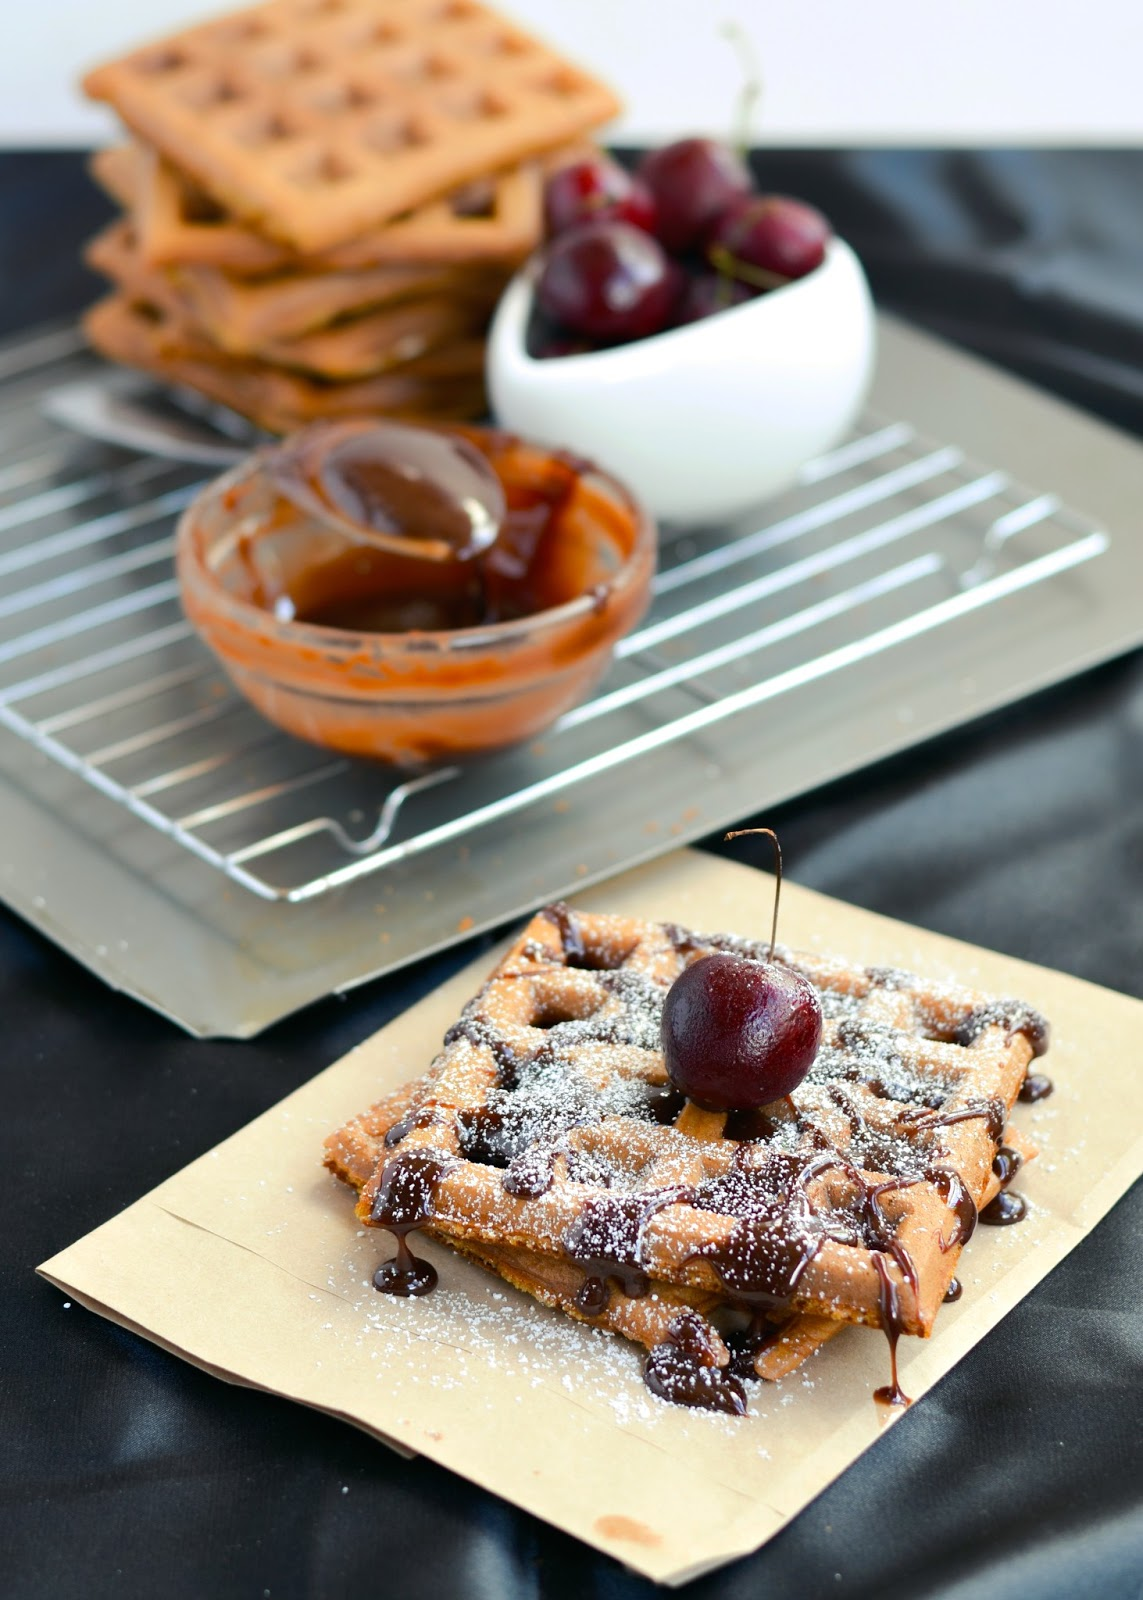 Coconut sourdough waffles with dark chocolate sauce and fresh cherries